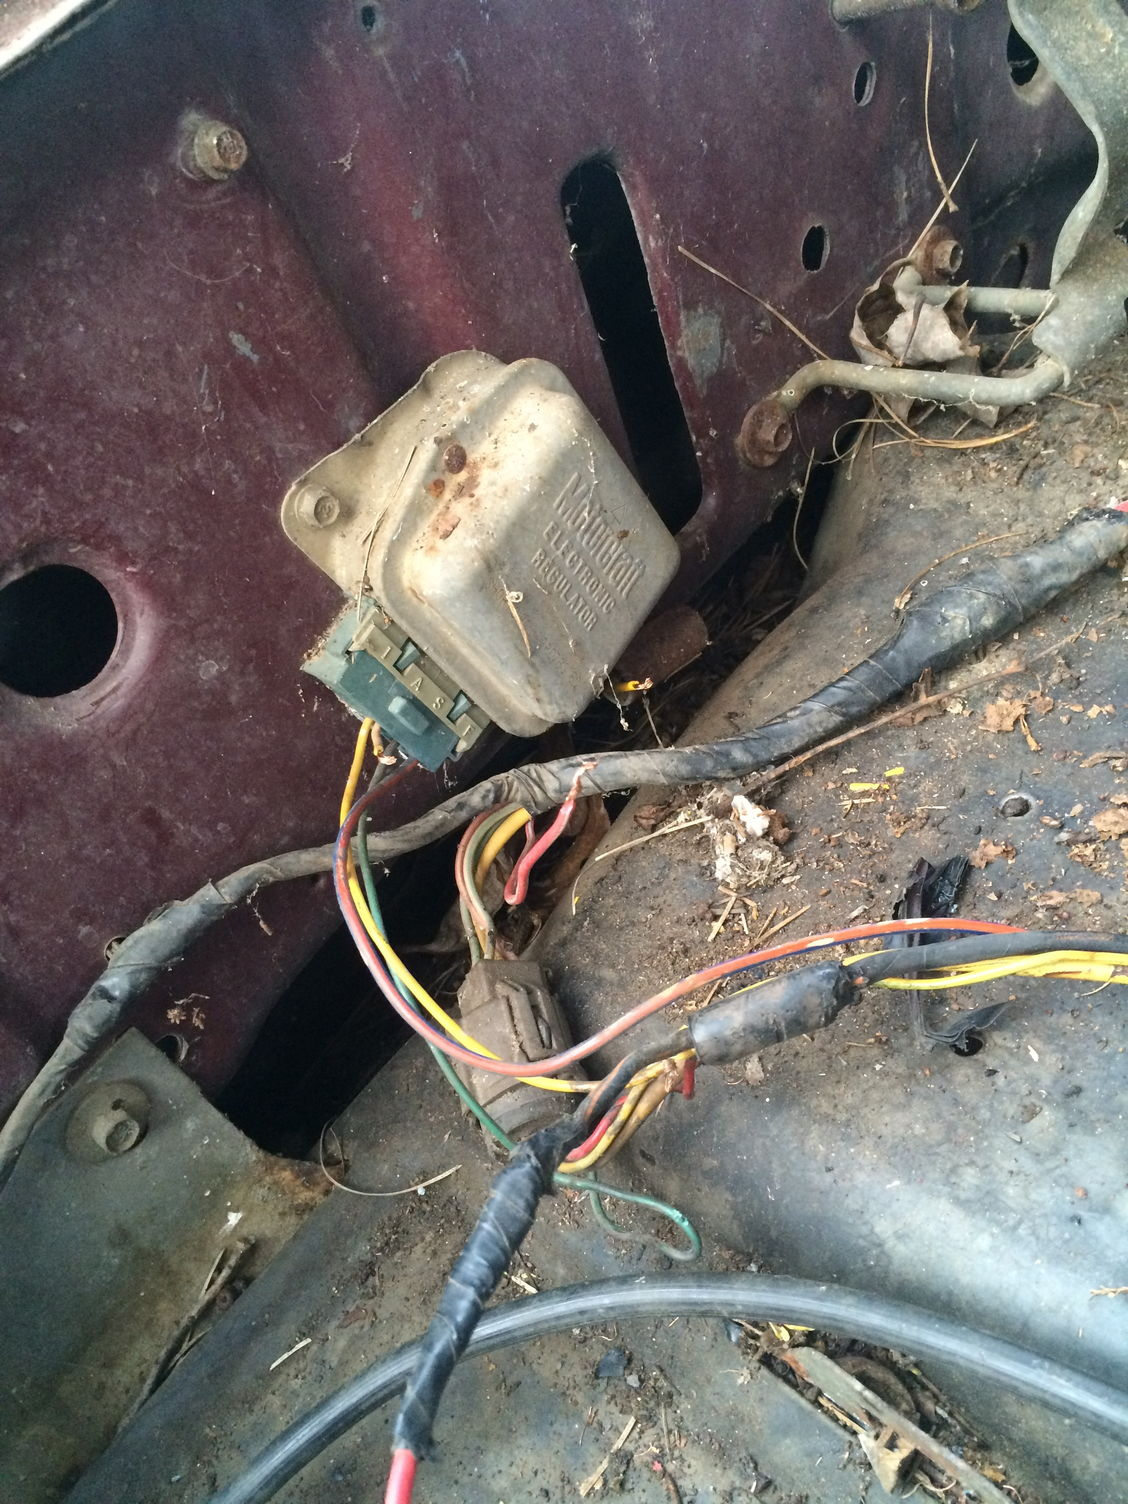 1982 f100 wiring issue - Ford Truck Enthusiasts Forums